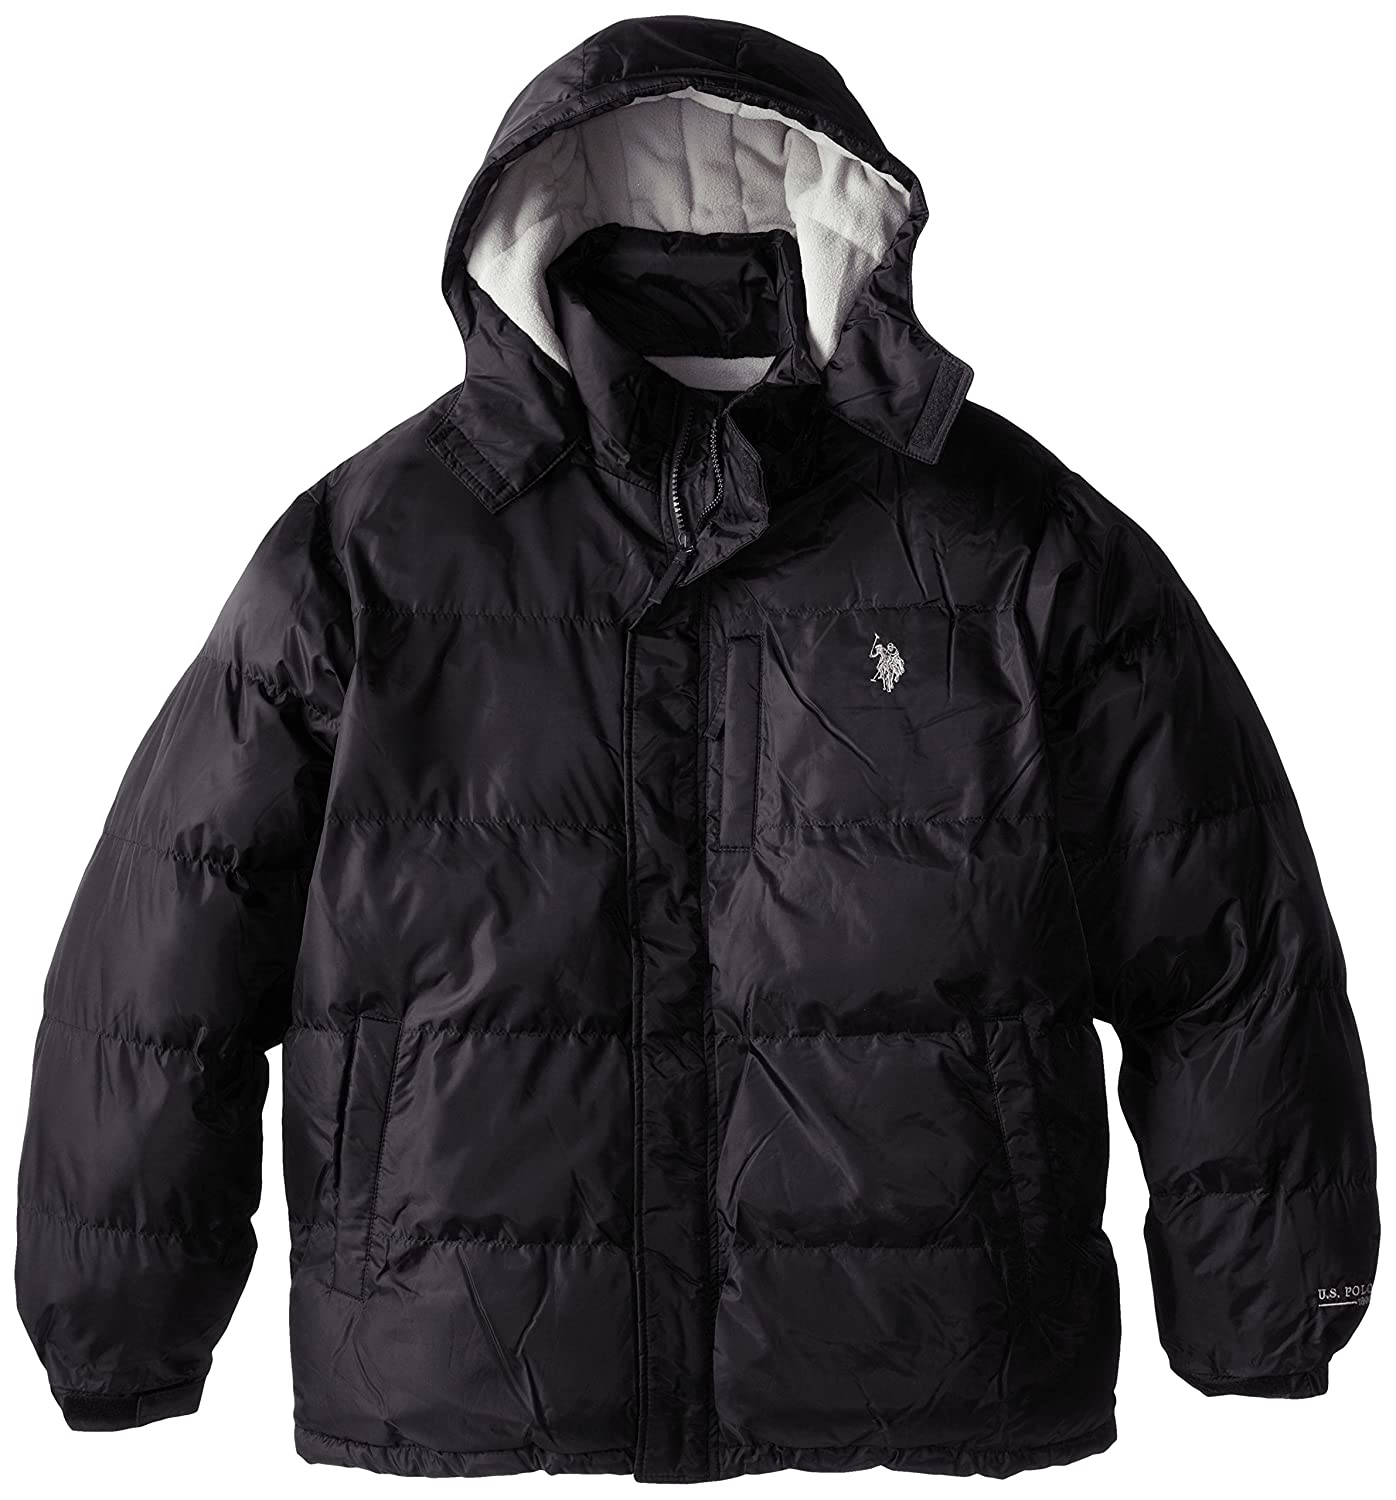 U.S. Polo Assn. Mens Big-Tall Classic Short Puffer Jacket with Pony Logo